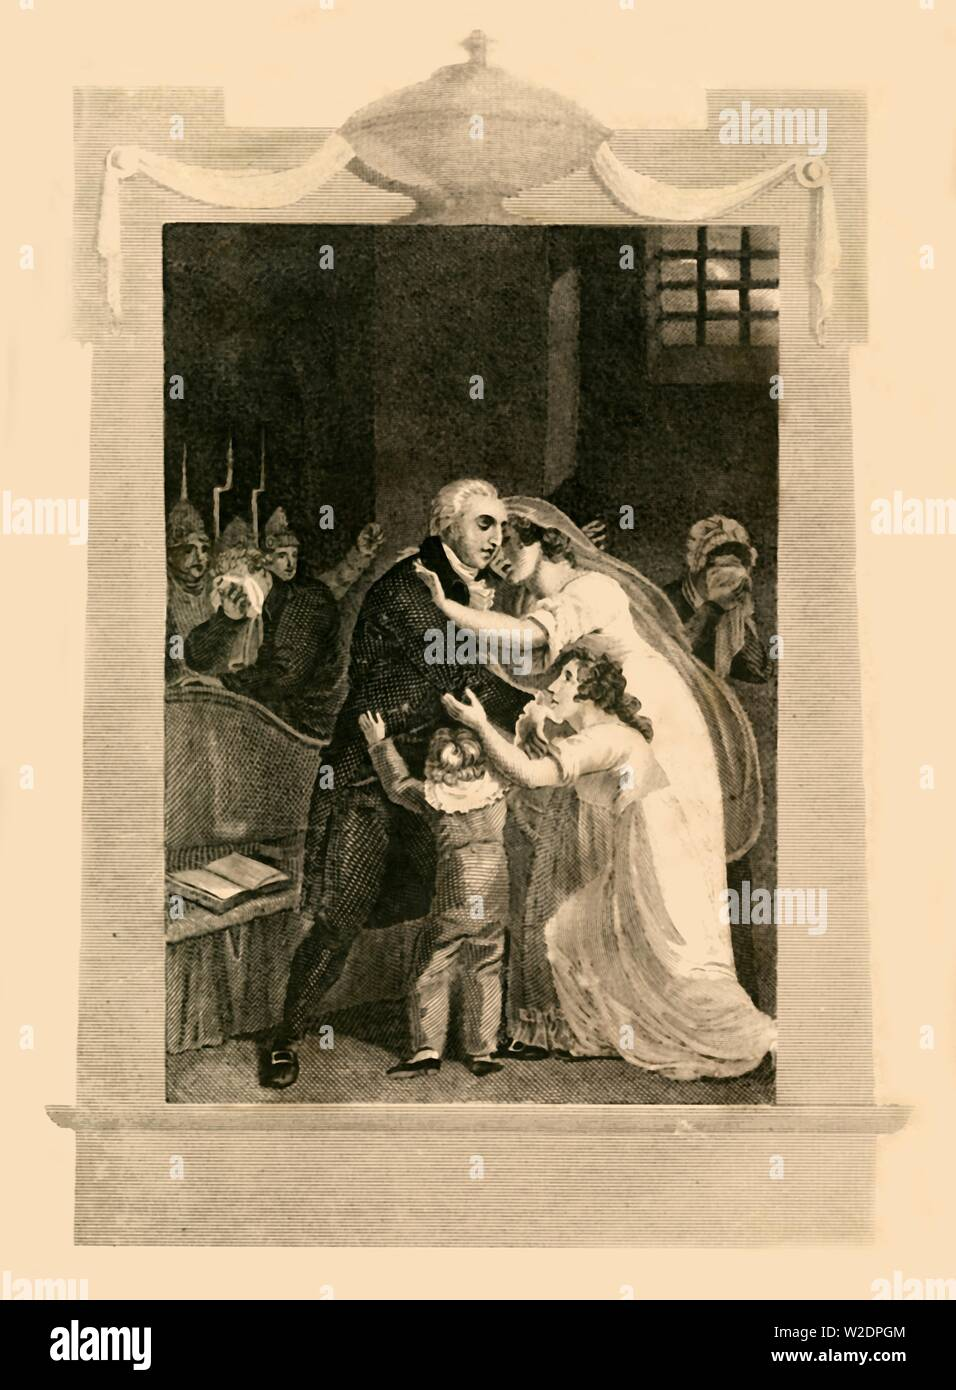 """'Louis XVI taking leave of his family previous to his execution', (1782), 1816. Louis XVI (1754-1793) last king of France was arrested on 13 August 1792, prior to execution by guillotine on 15 January 1793. From """"The History of the War, from the Commencement of the French Revolution to the Present Time, Vol. I"""", by Hewson Clarke, Esq. [T. Kinnersley, Limited, London, 1816] - Stock Image"""